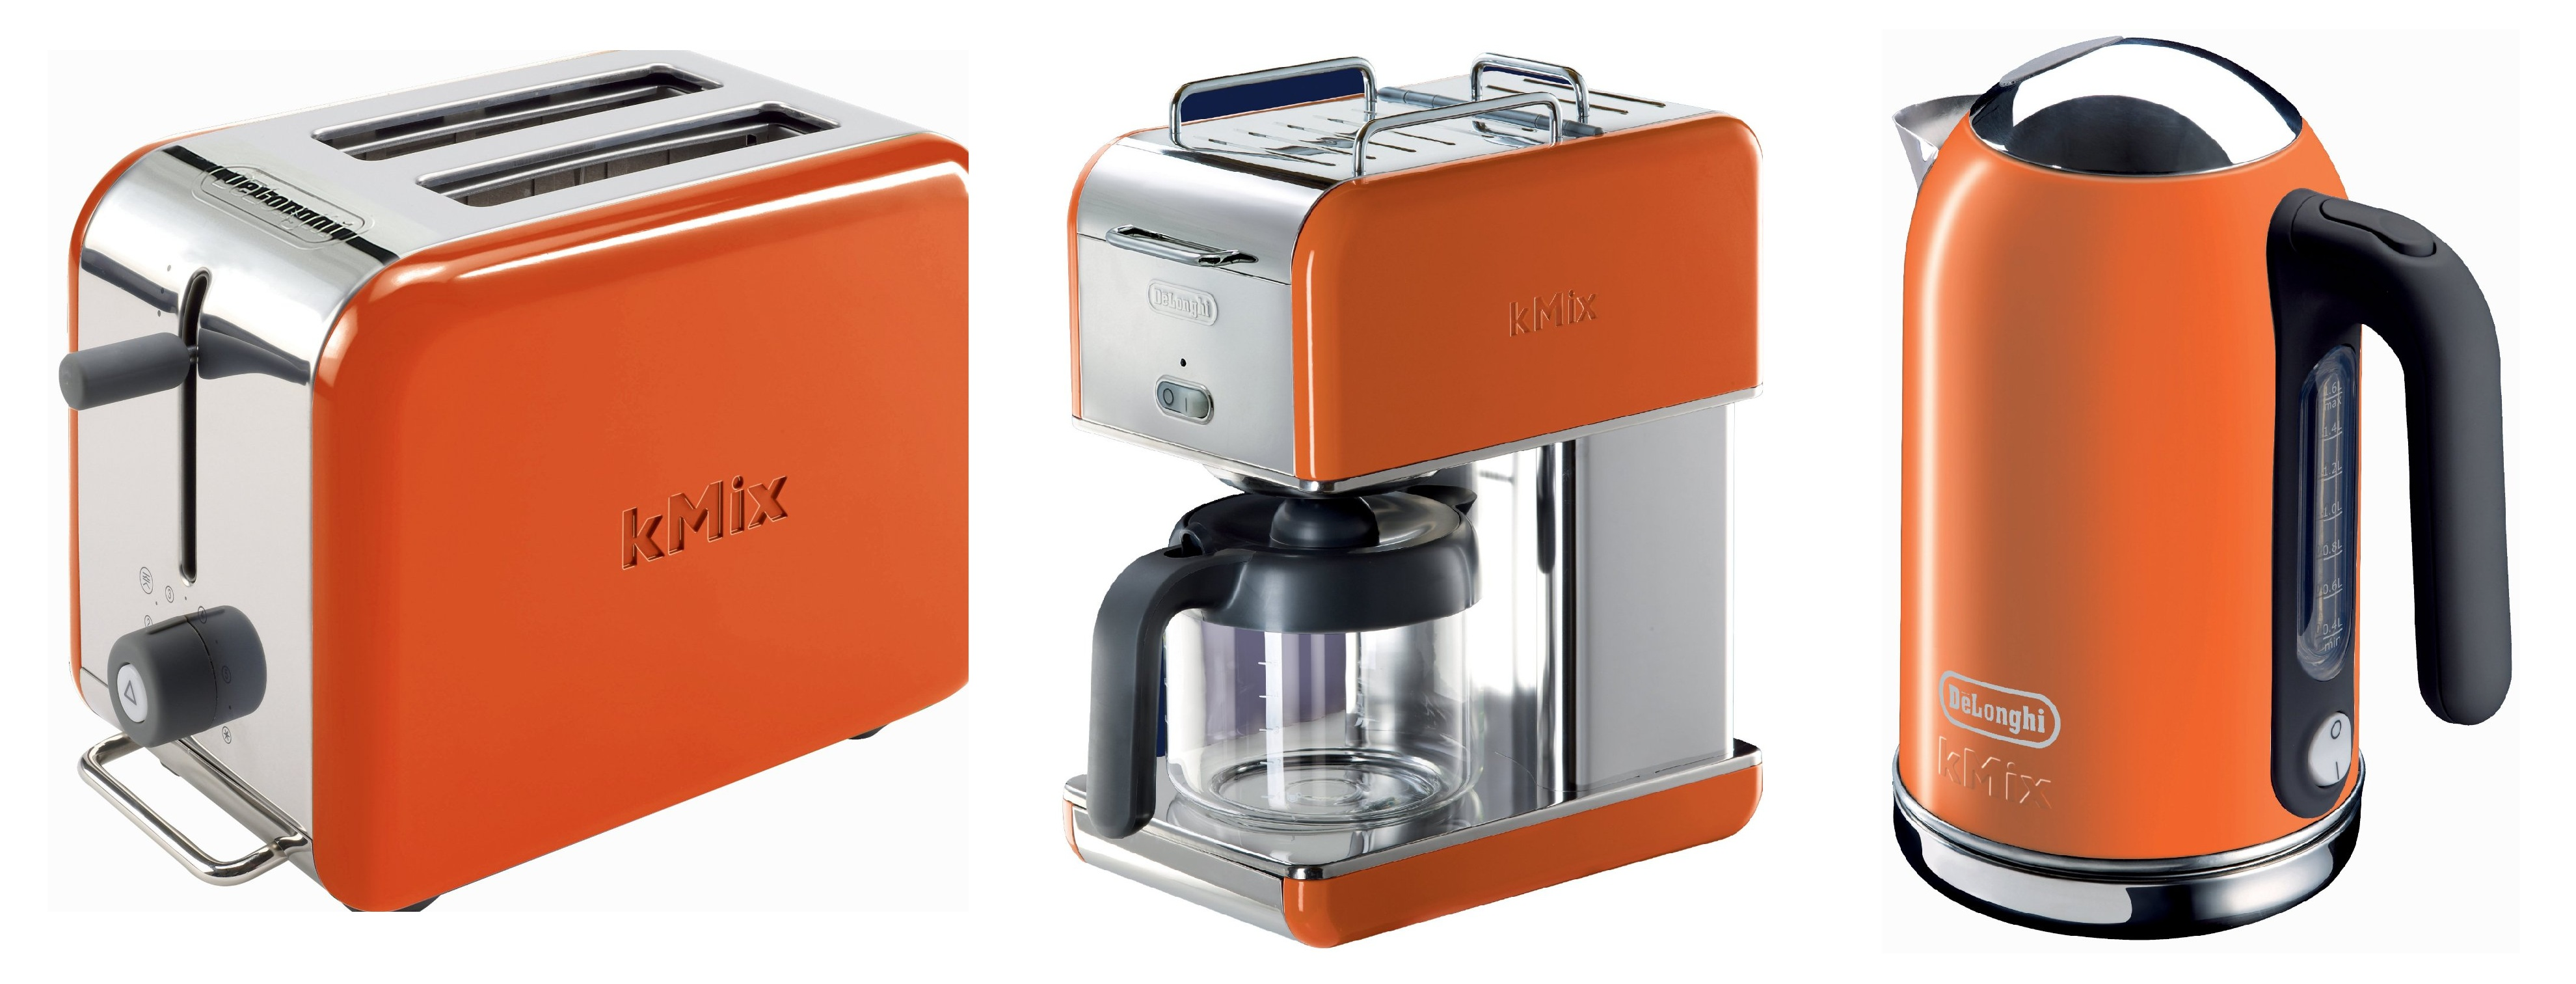 Remarkable Orange Kitchen Appliances in Color 3960 x 1512 · 696 kB · jpeg